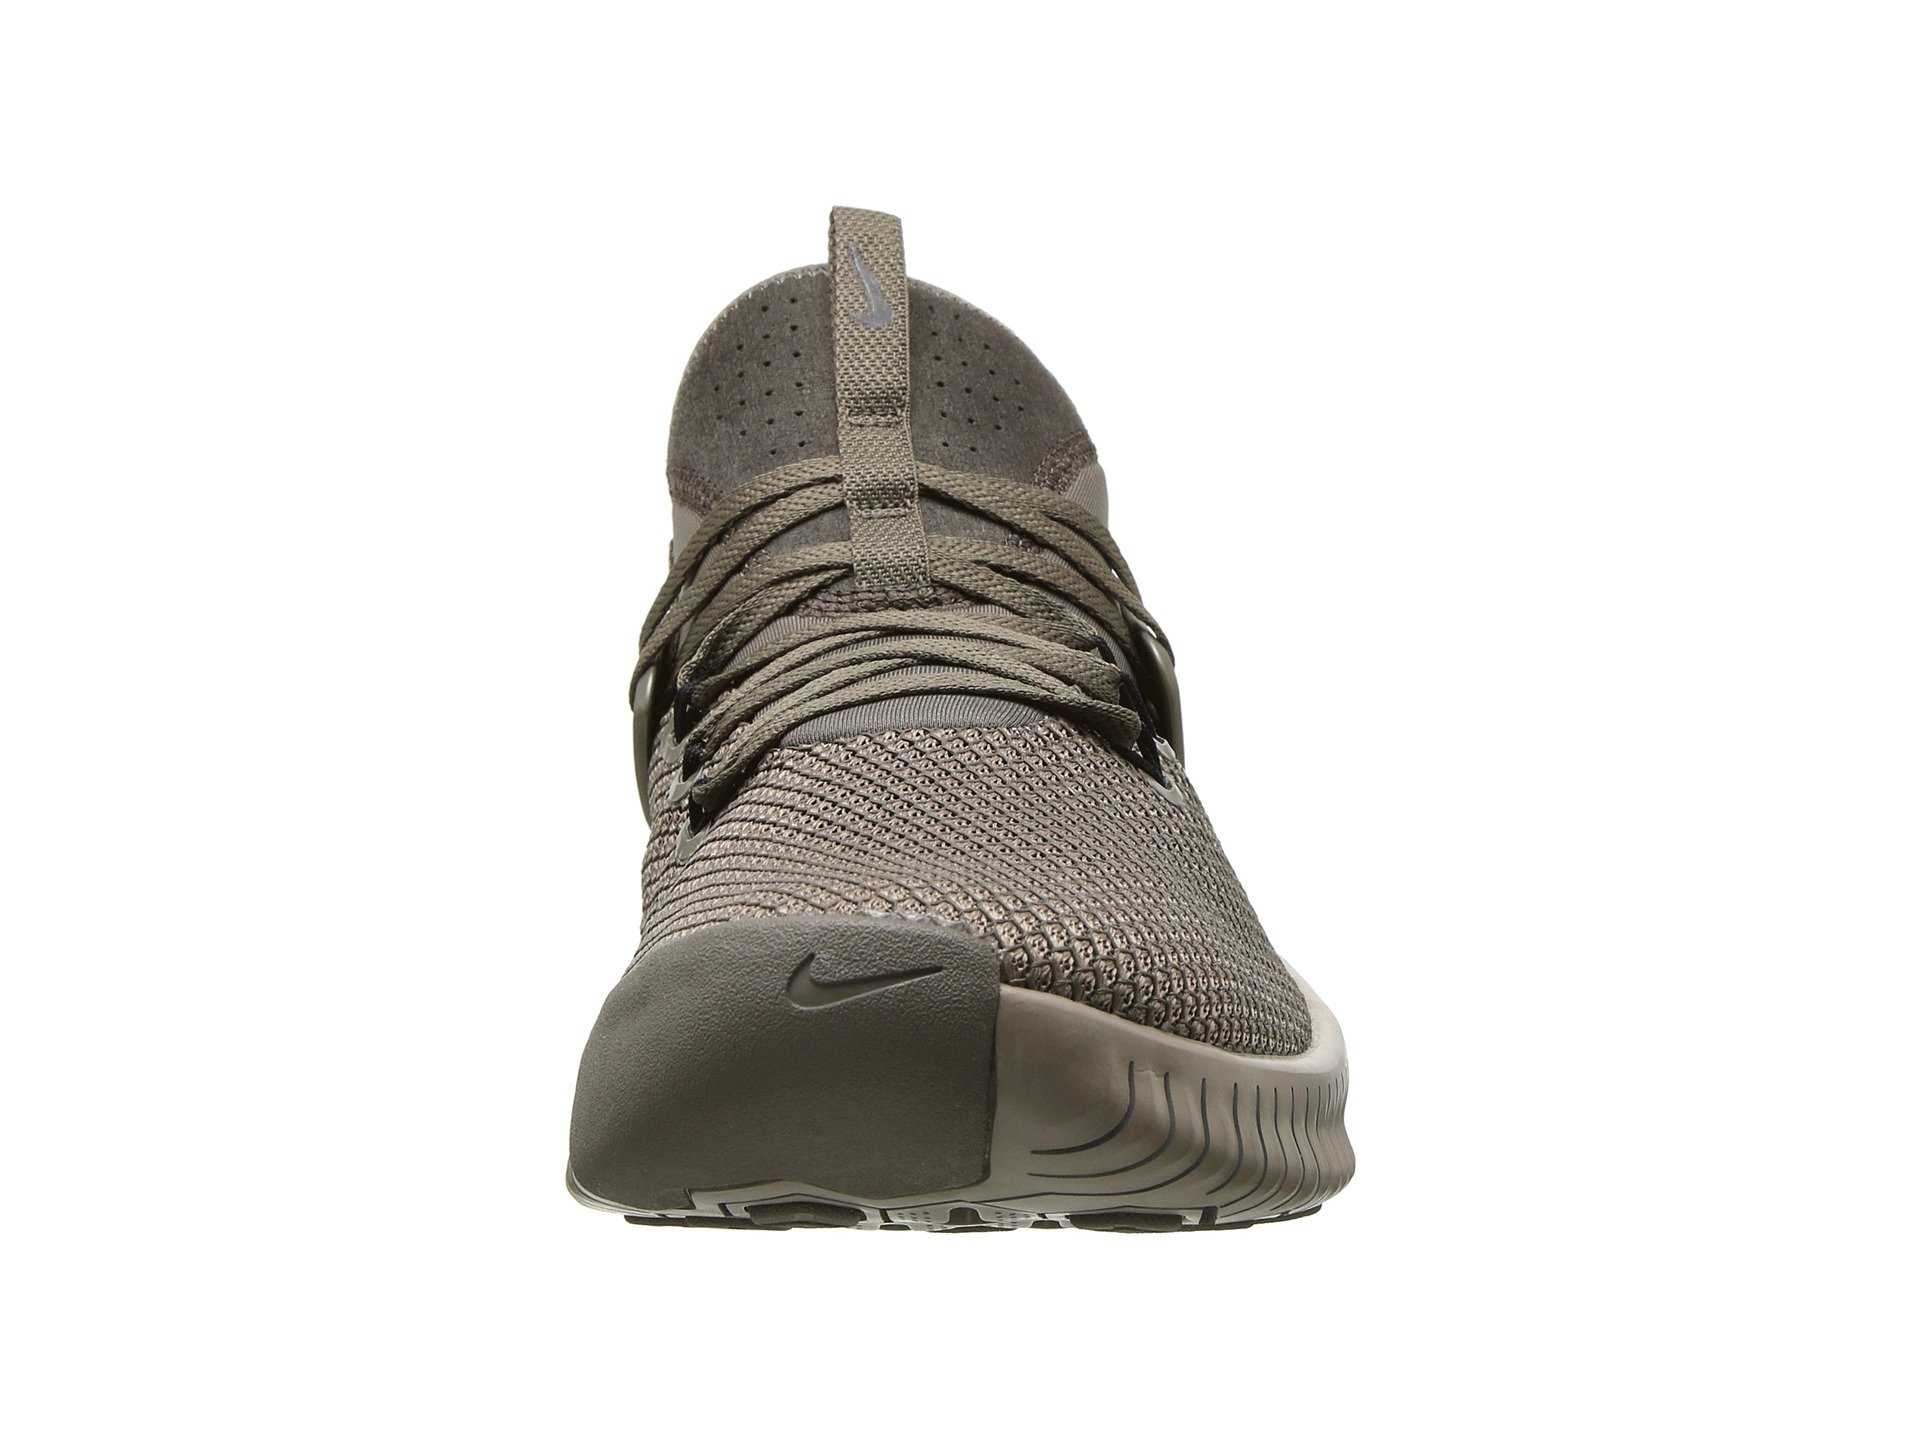 quality design 4a4a2 bbfdb Nike Air Yeezy 2 Sizing Widest Golf Shoes   HopShopGo